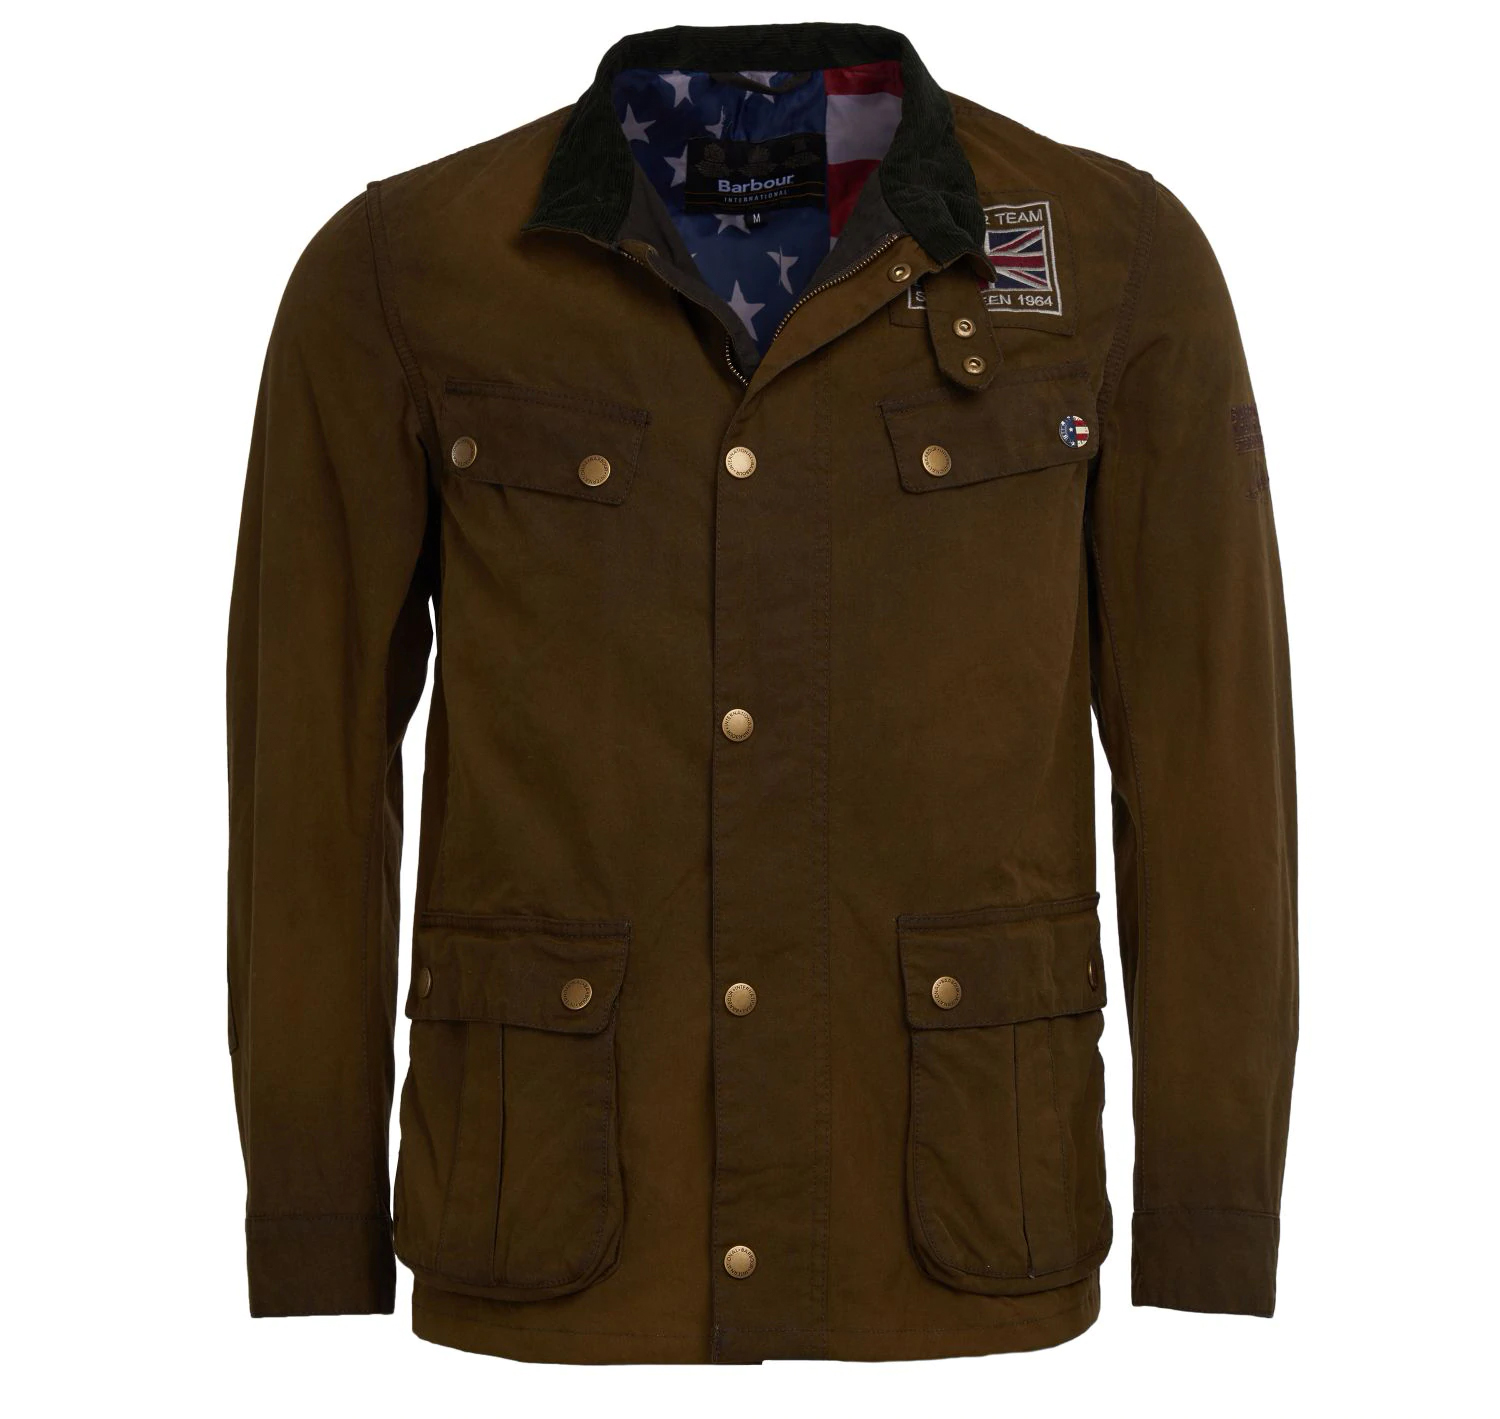 Barbour Barbour Lester Washed Waxed Jacket Olive Barbour International from the Steve McQueen collection